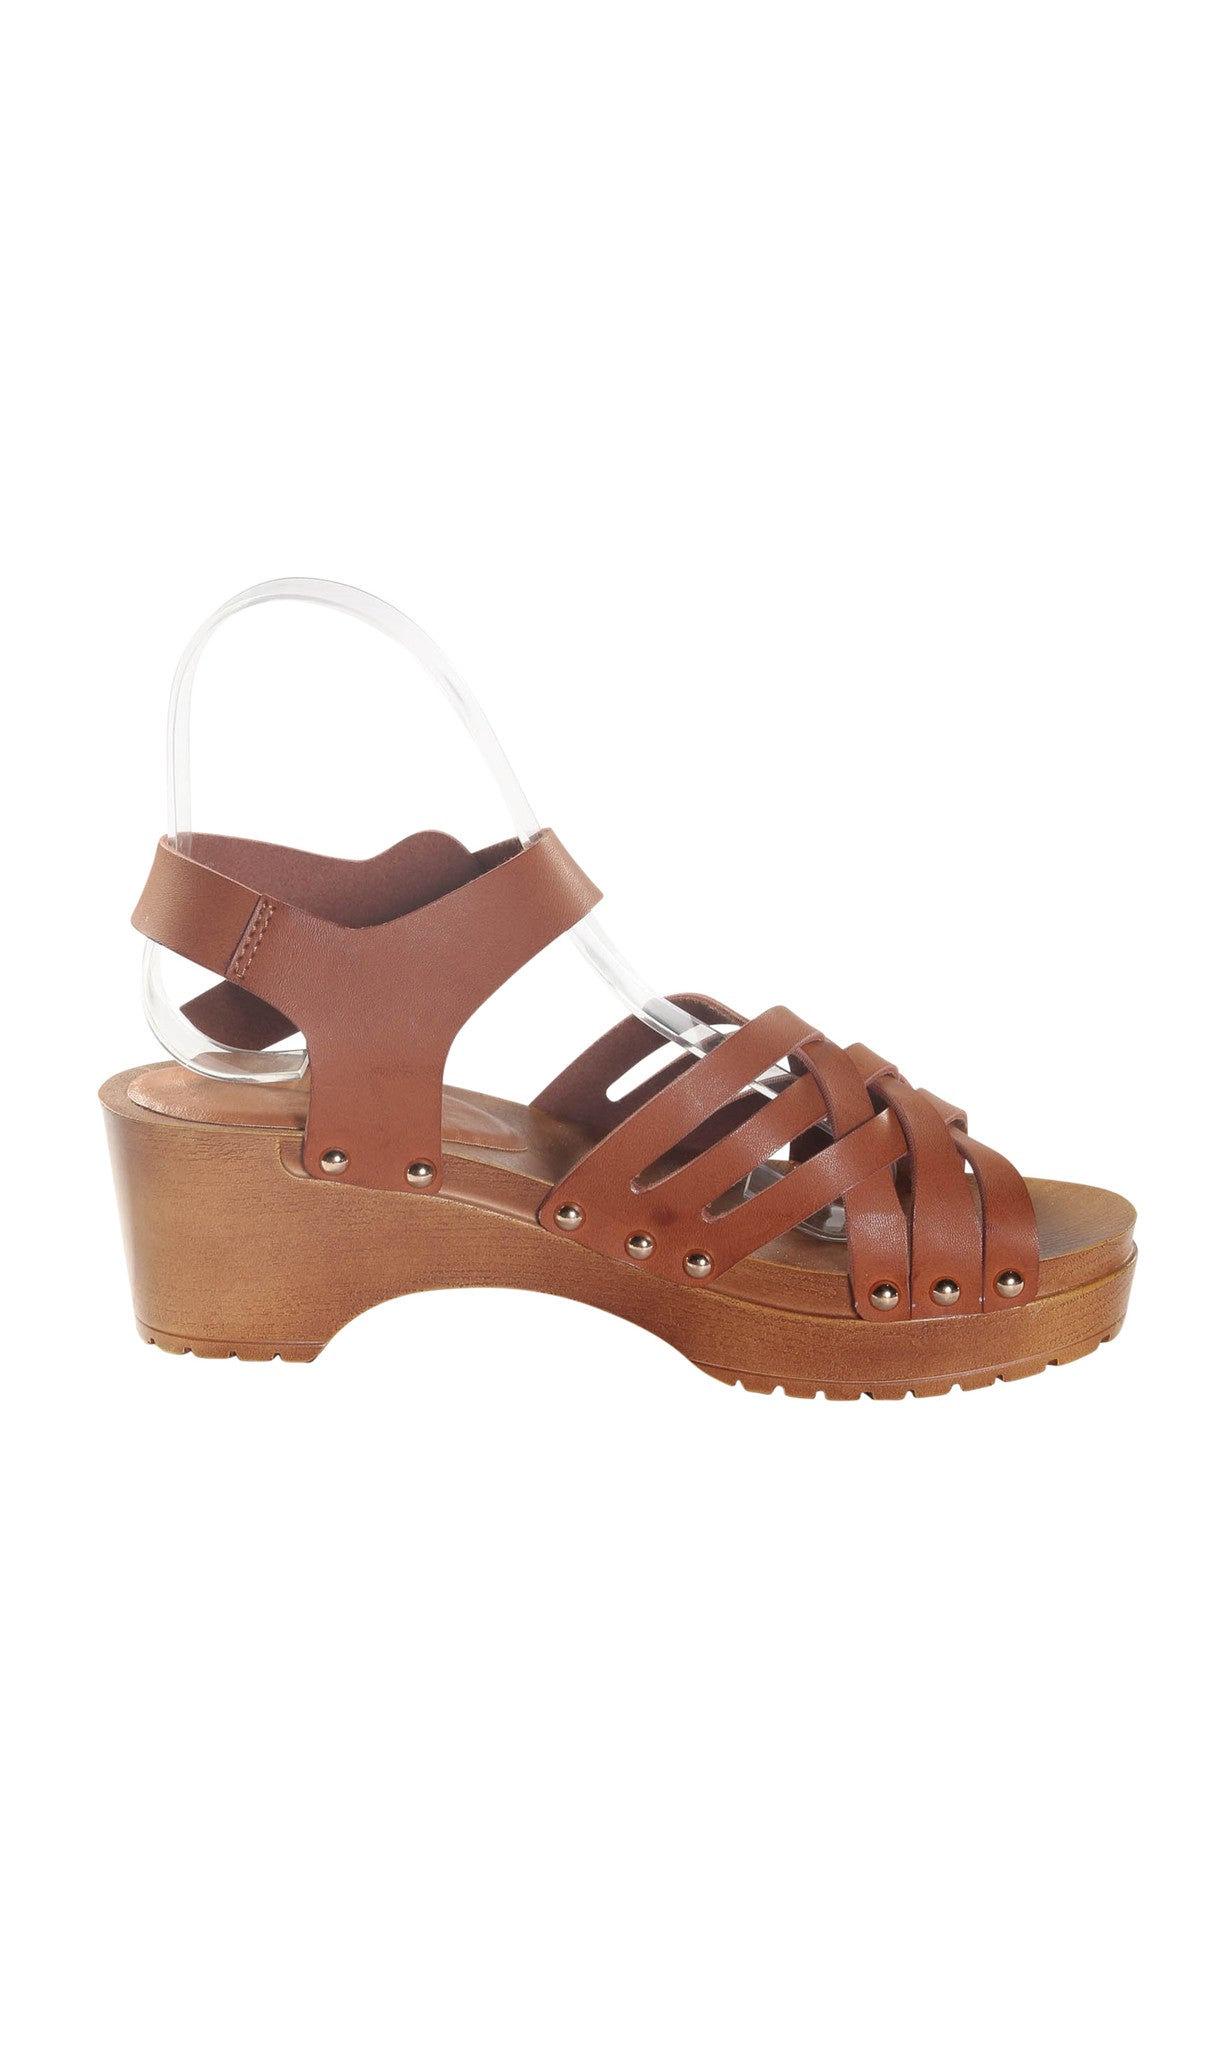 Open Toe Criss Cross Sandal